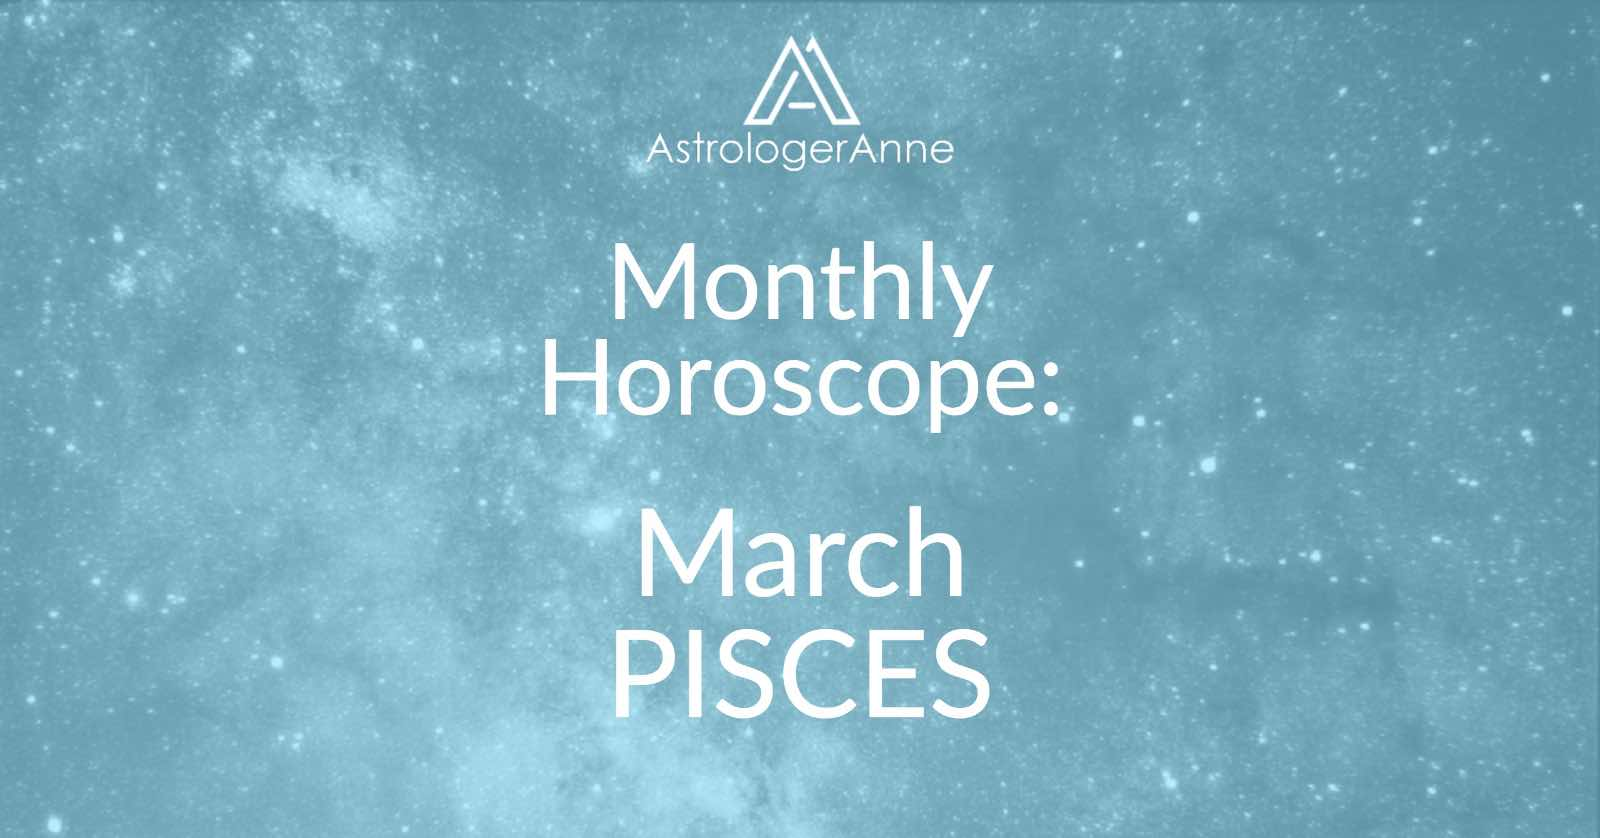 Pisces monthly horoscope March 2019